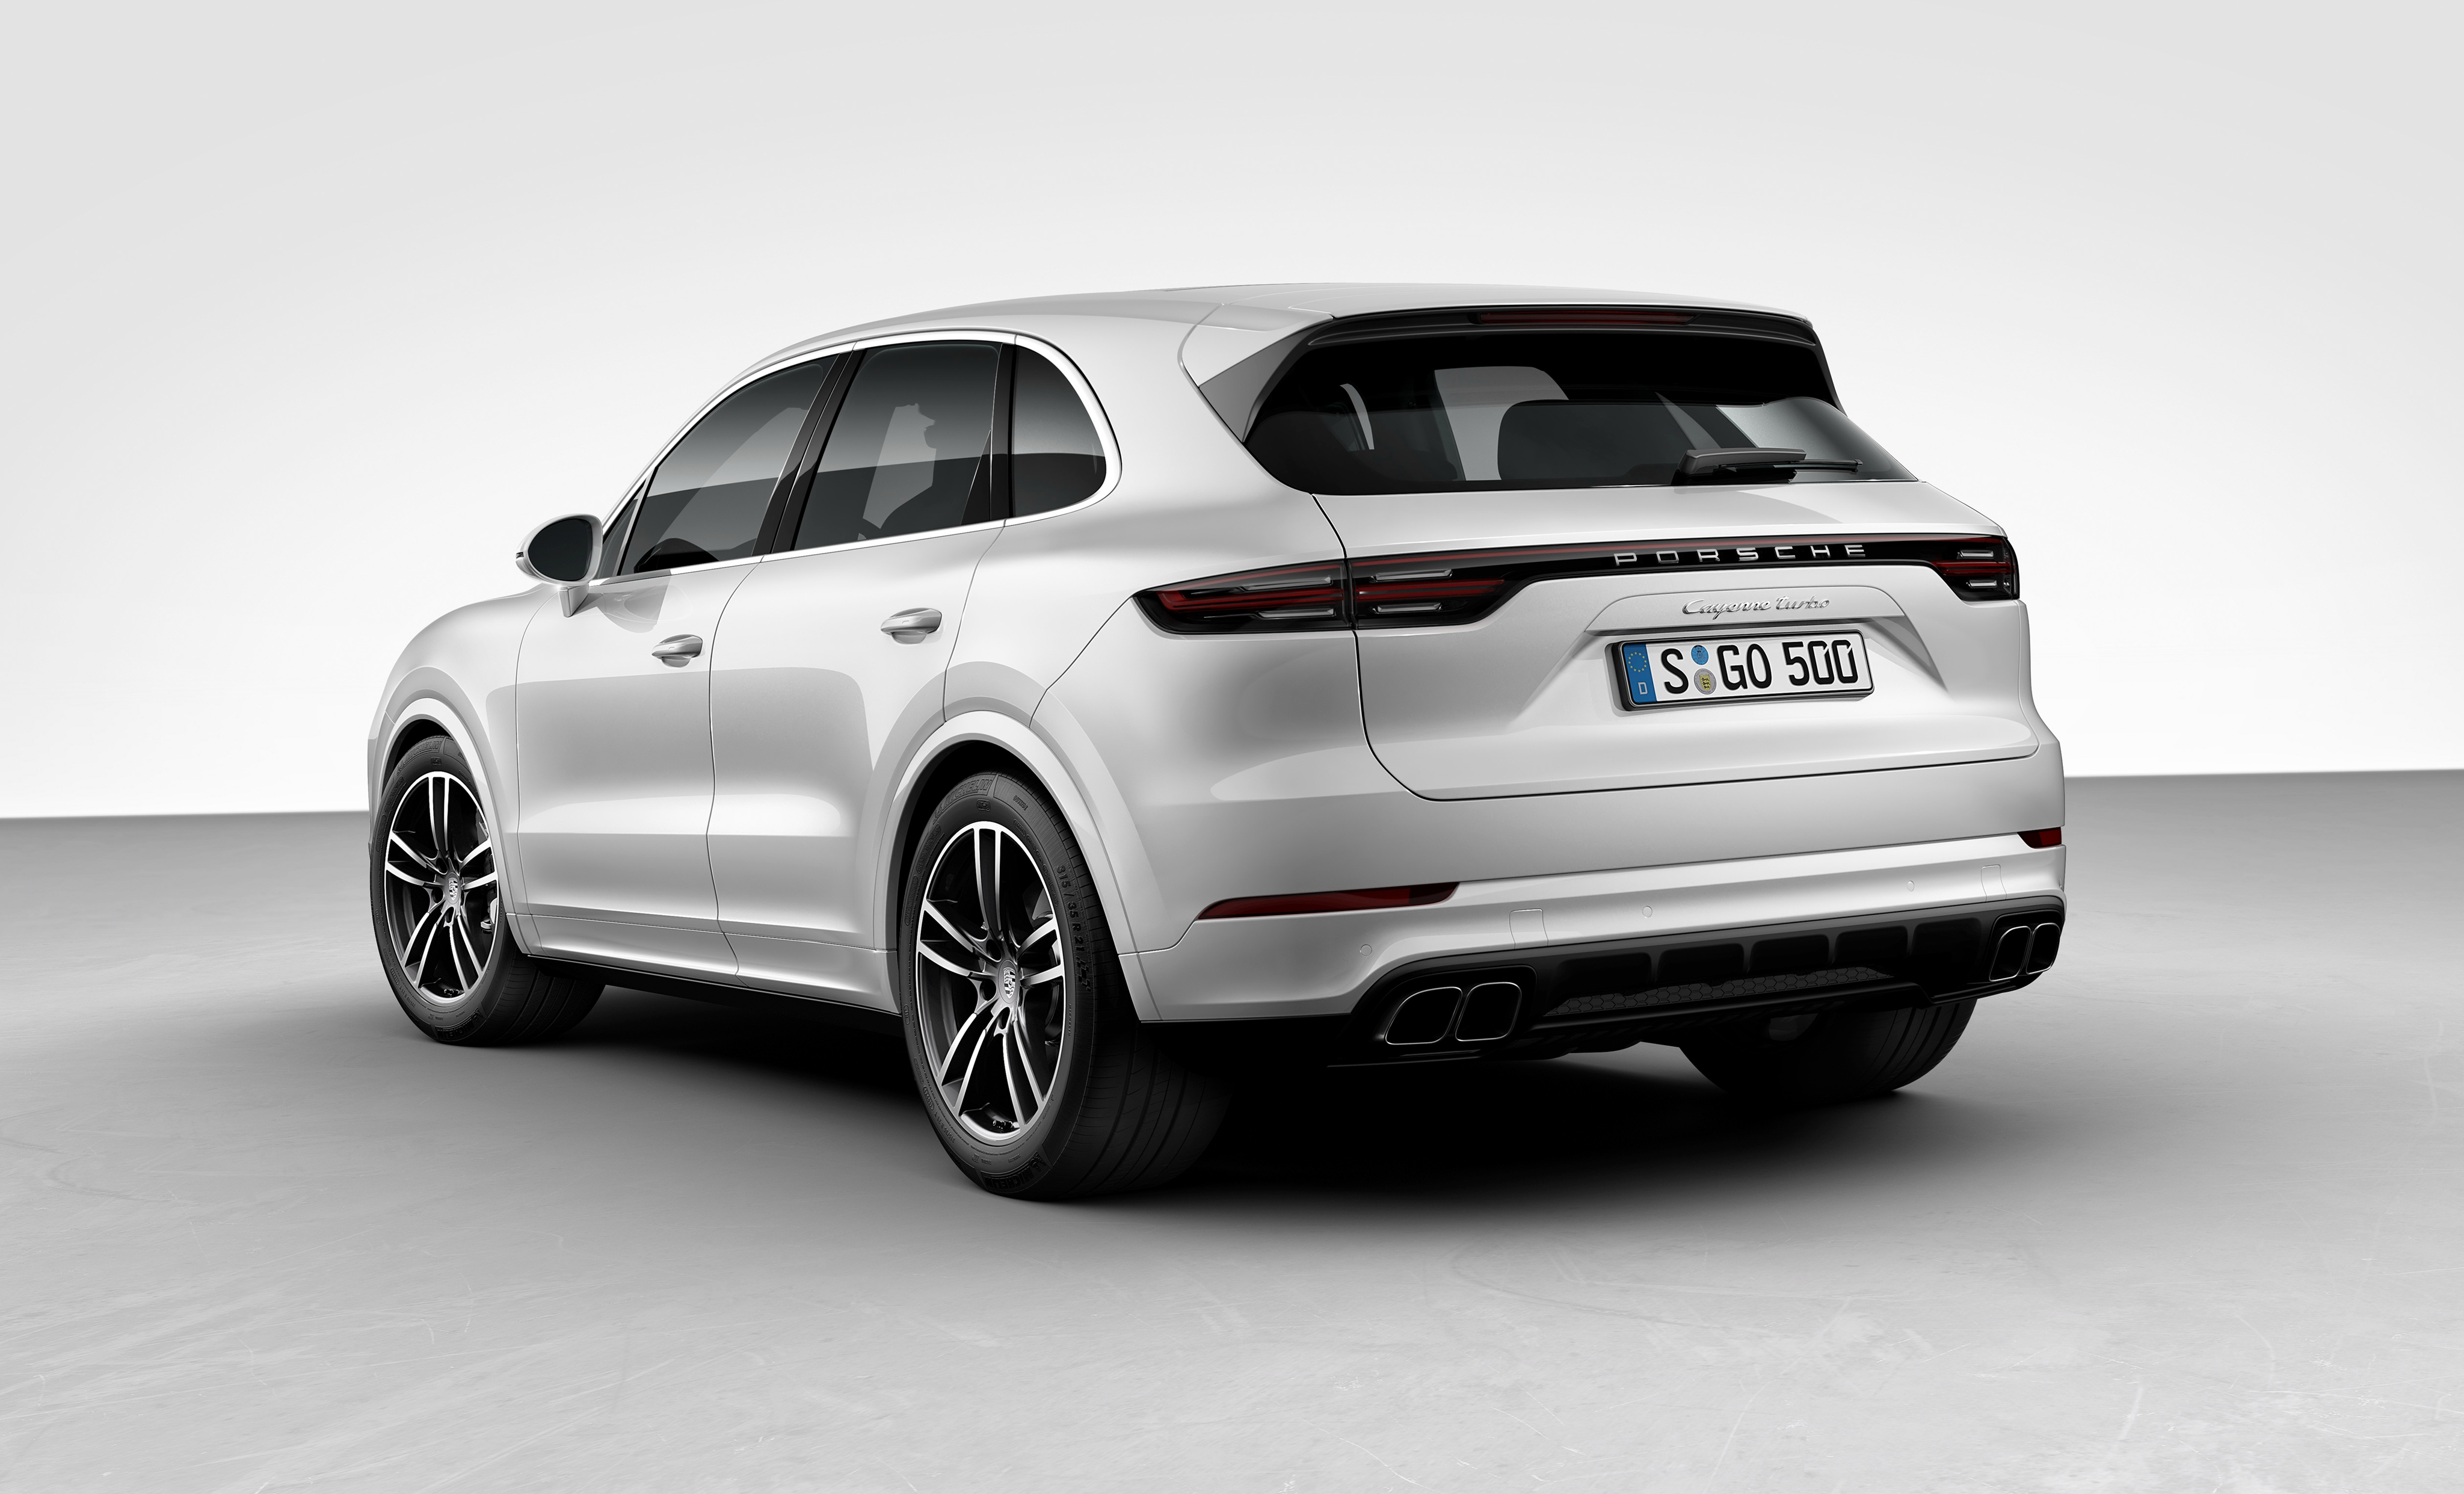 news porsche cayenne coupe closer than ever to reality as x6 rival. Black Bedroom Furniture Sets. Home Design Ideas